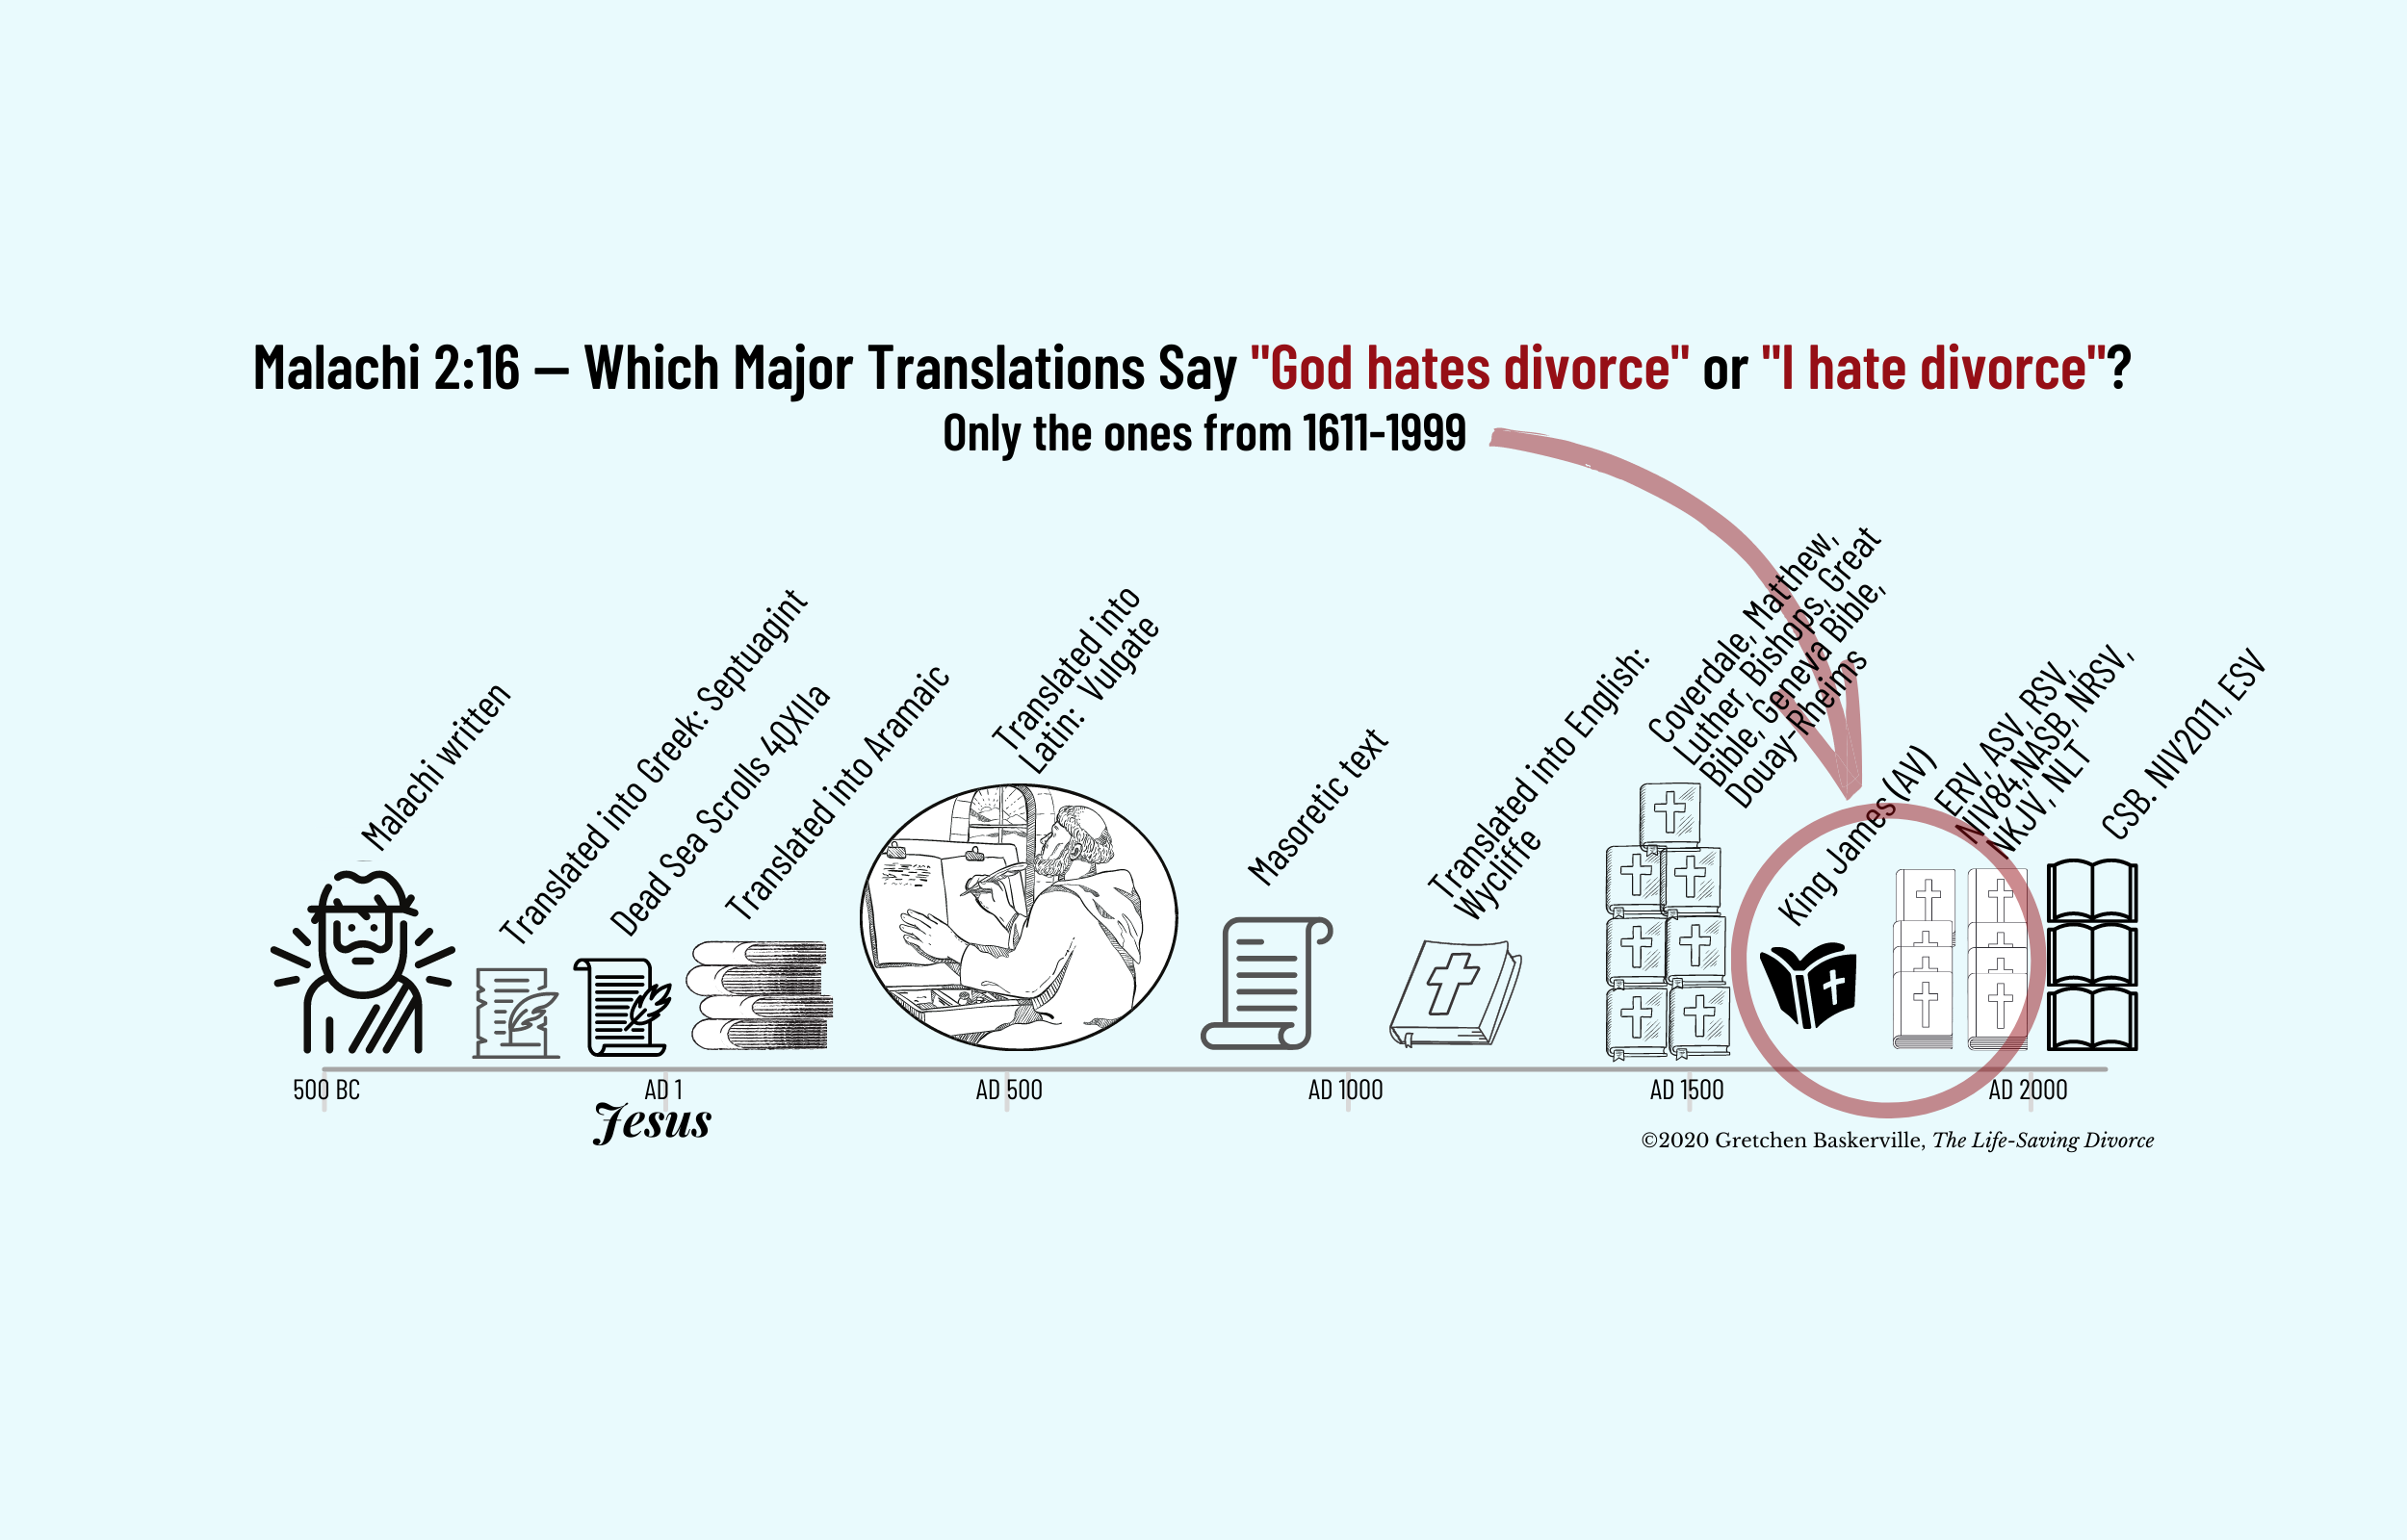 """This infographic shows that from writing of the Book of Malachi, in about 500 BC, to AD 1600, no major Bible translation interpreted Malachi 2:16 as """"God hates divorce"""" or """"I have divorce."""""""